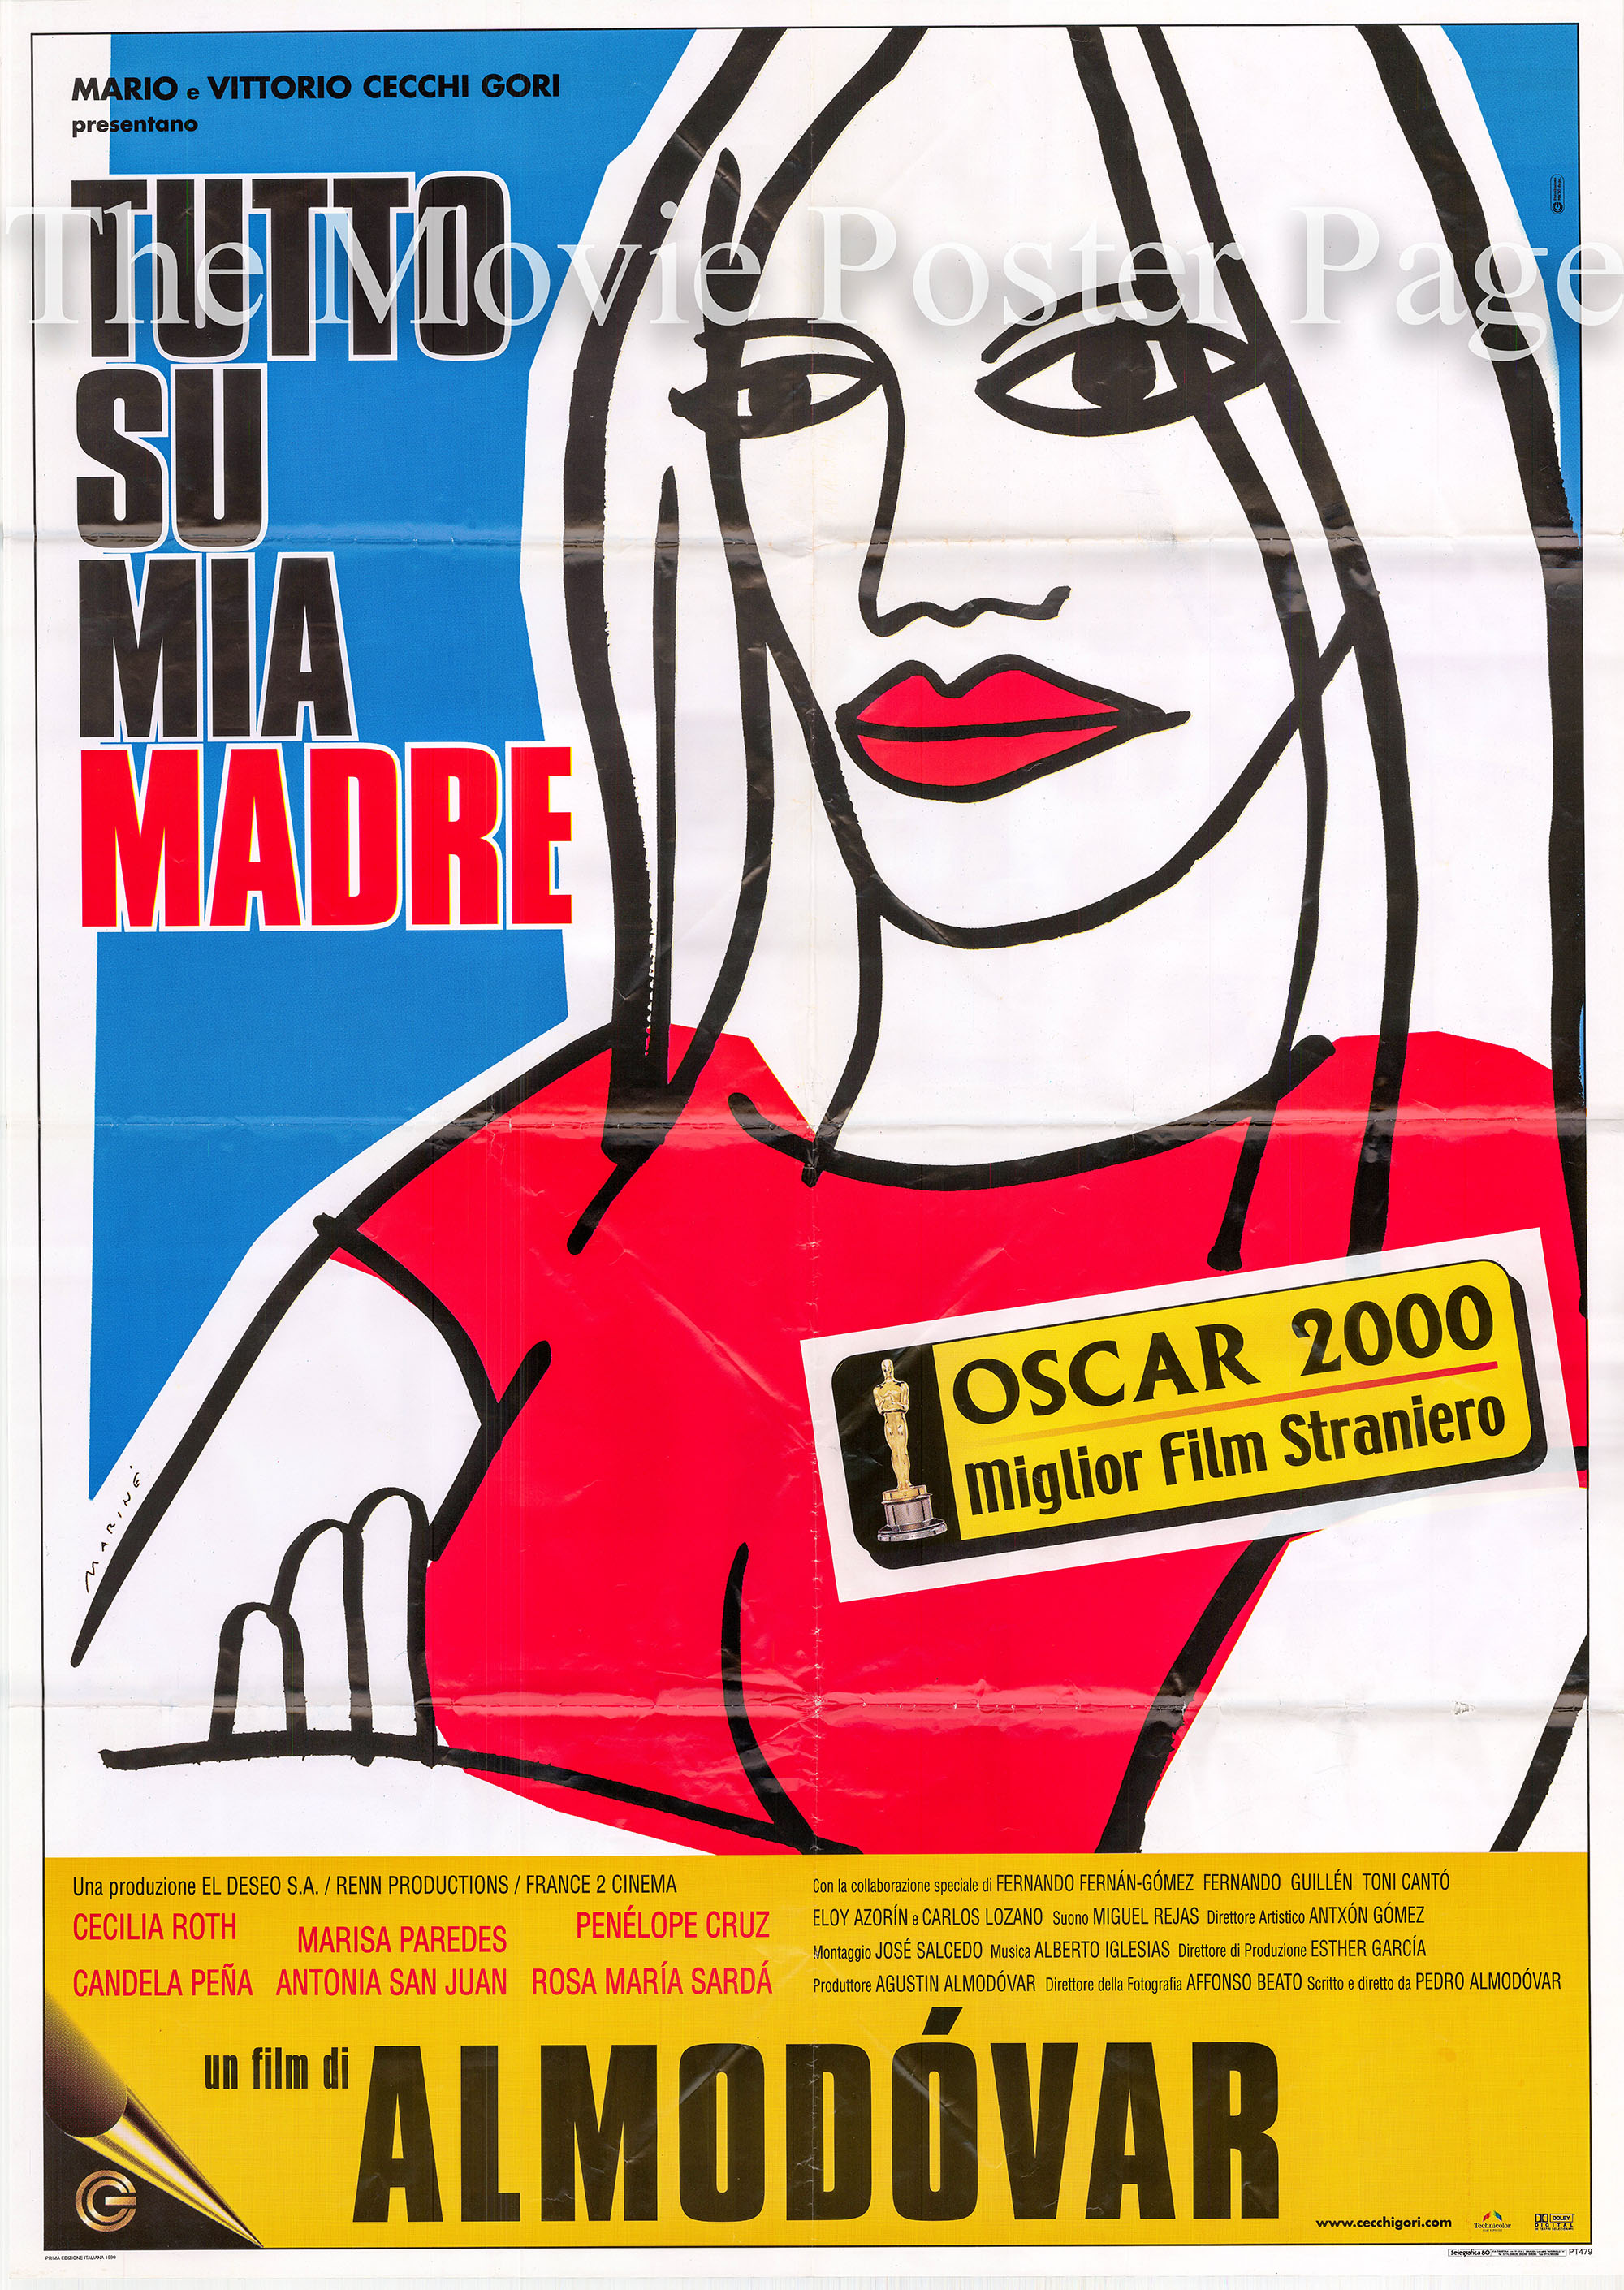 Pictured is an Italian two-sheet poster for the 1999 Pedro Almodovar film All About My Mother starring Cecilia Roth as Manuela.